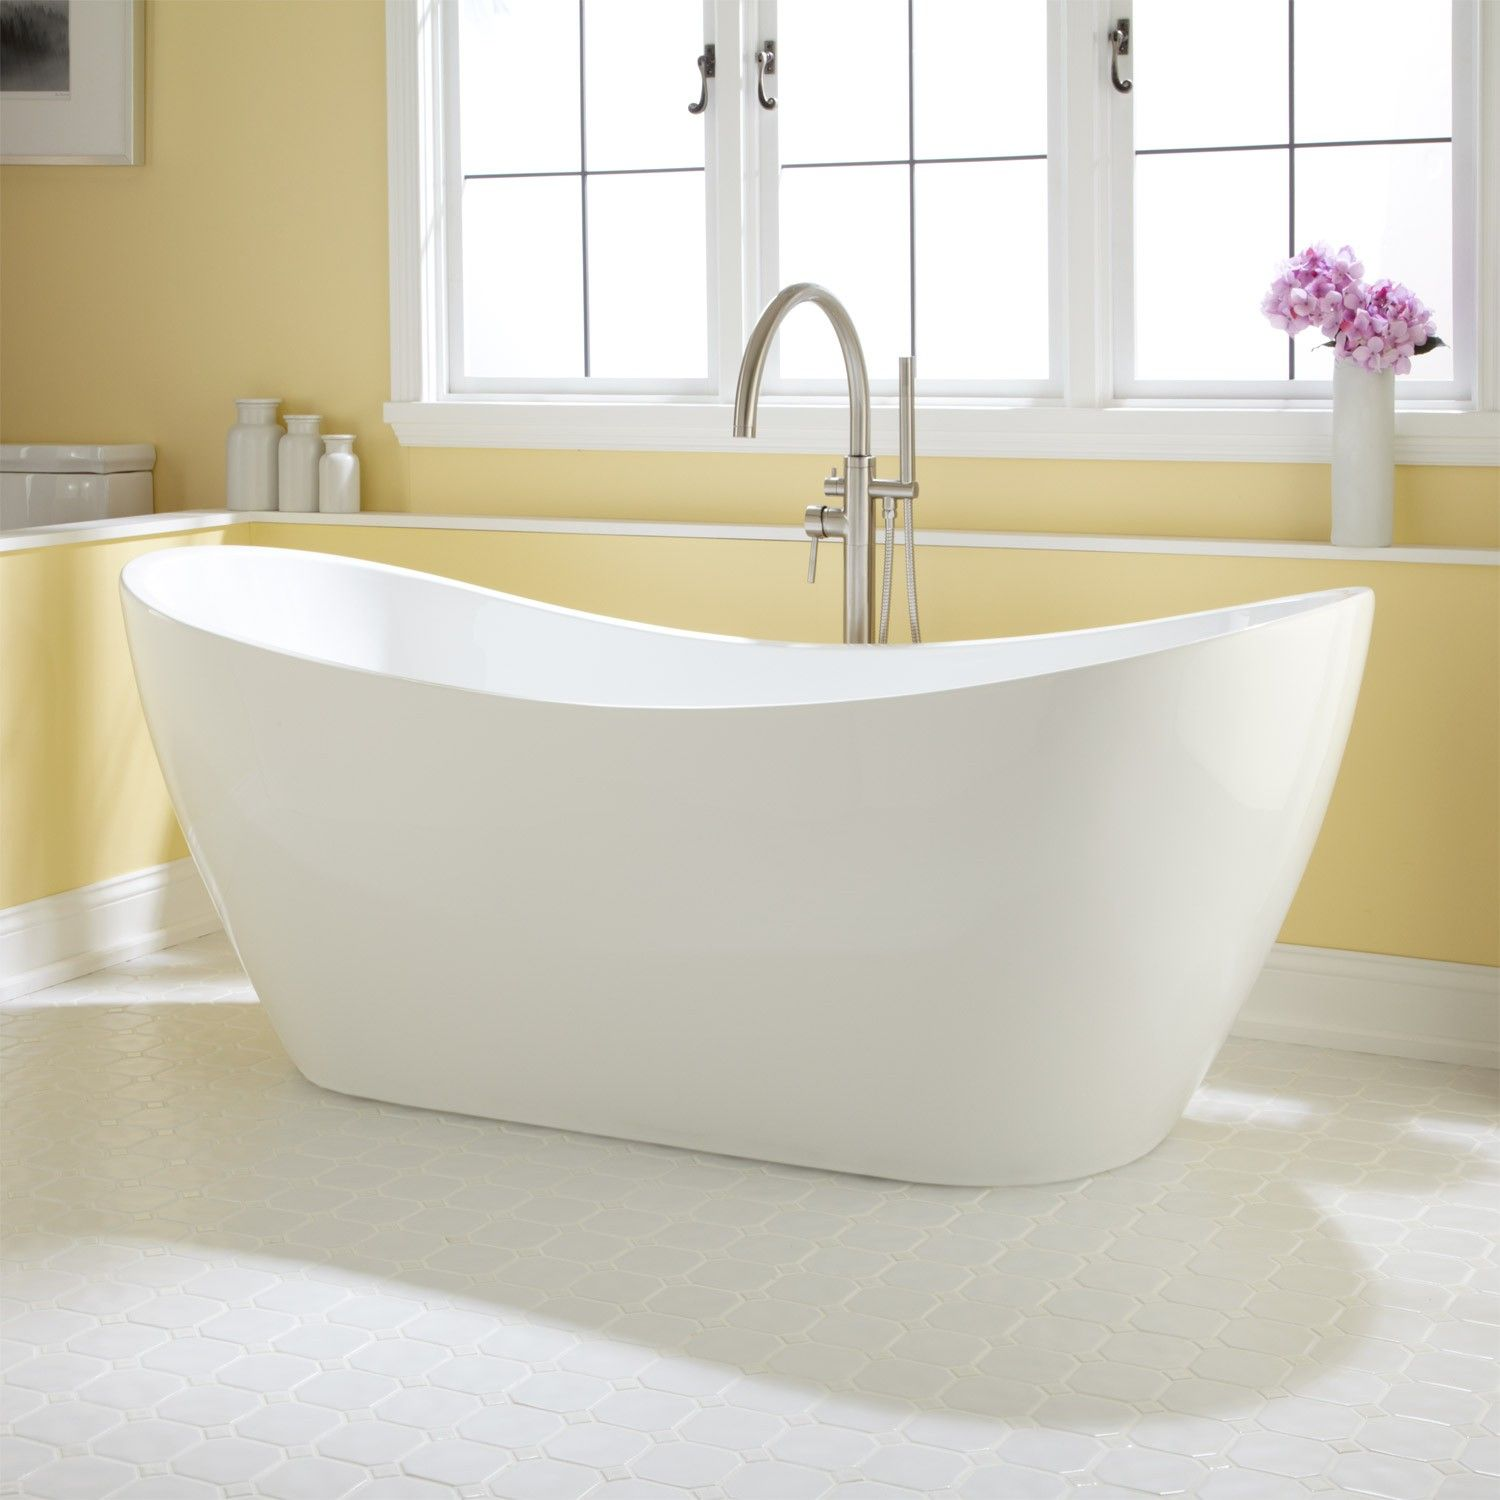 72 sheba acrylic double slipper tub tubs acrylics and for Stand up bath tub